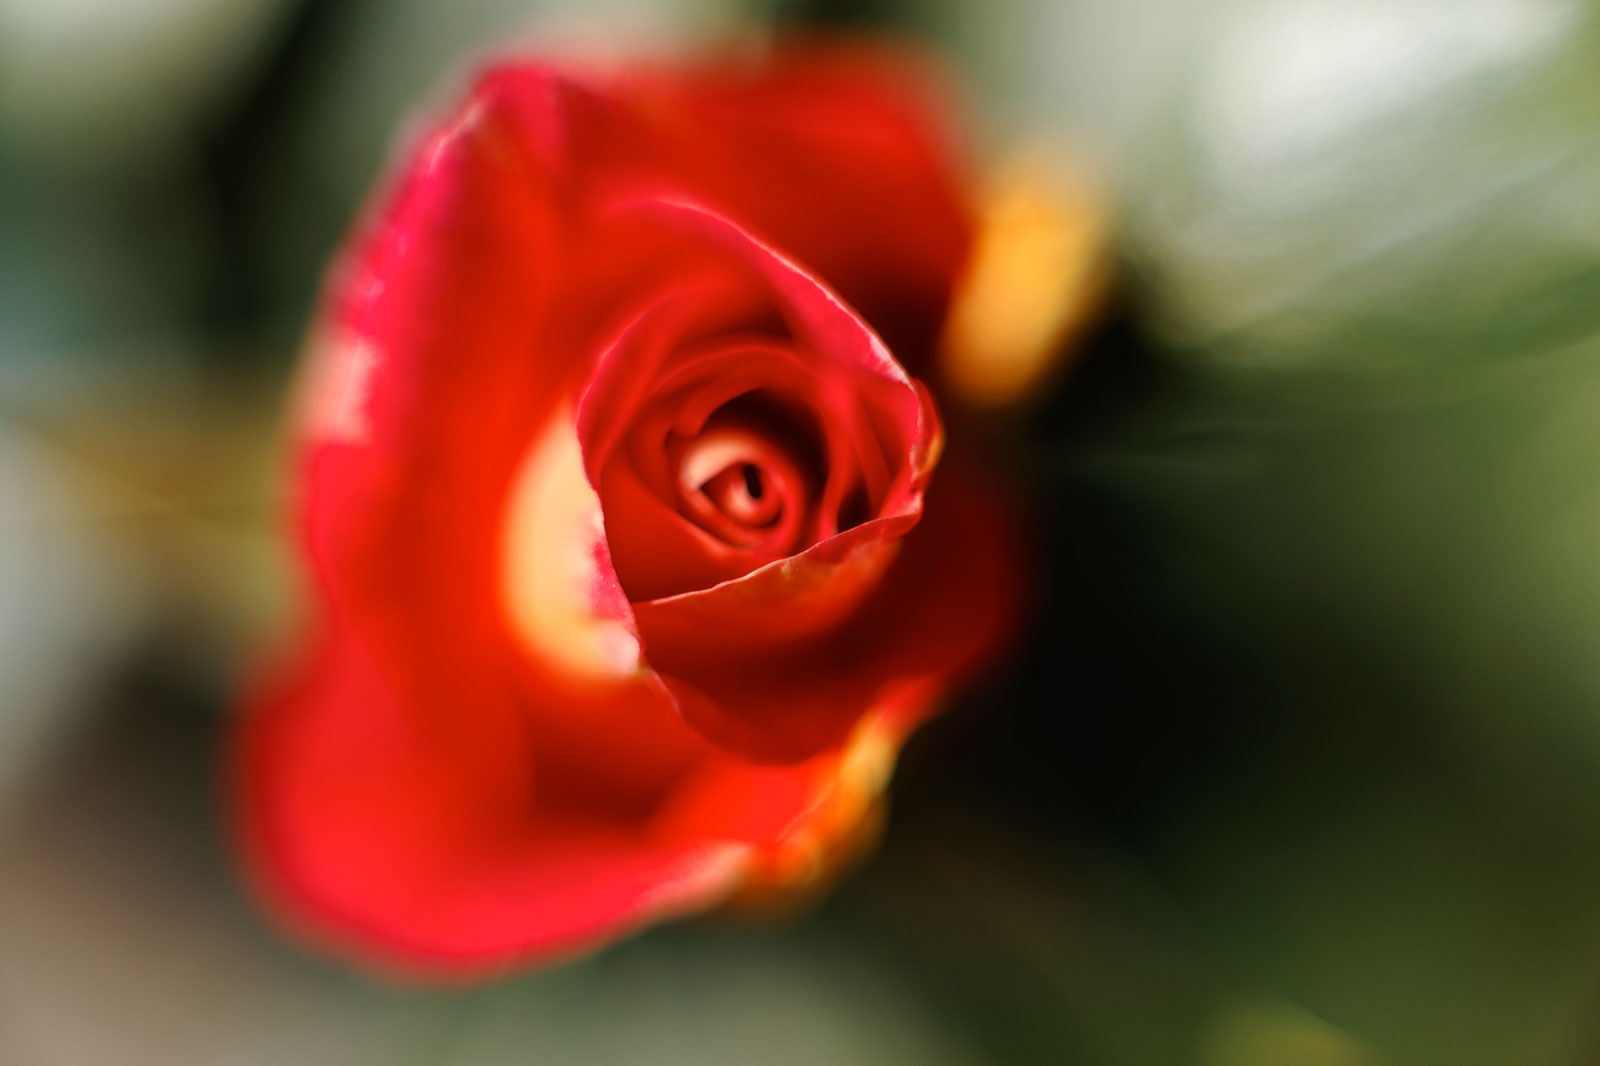 The first rose, April 2011